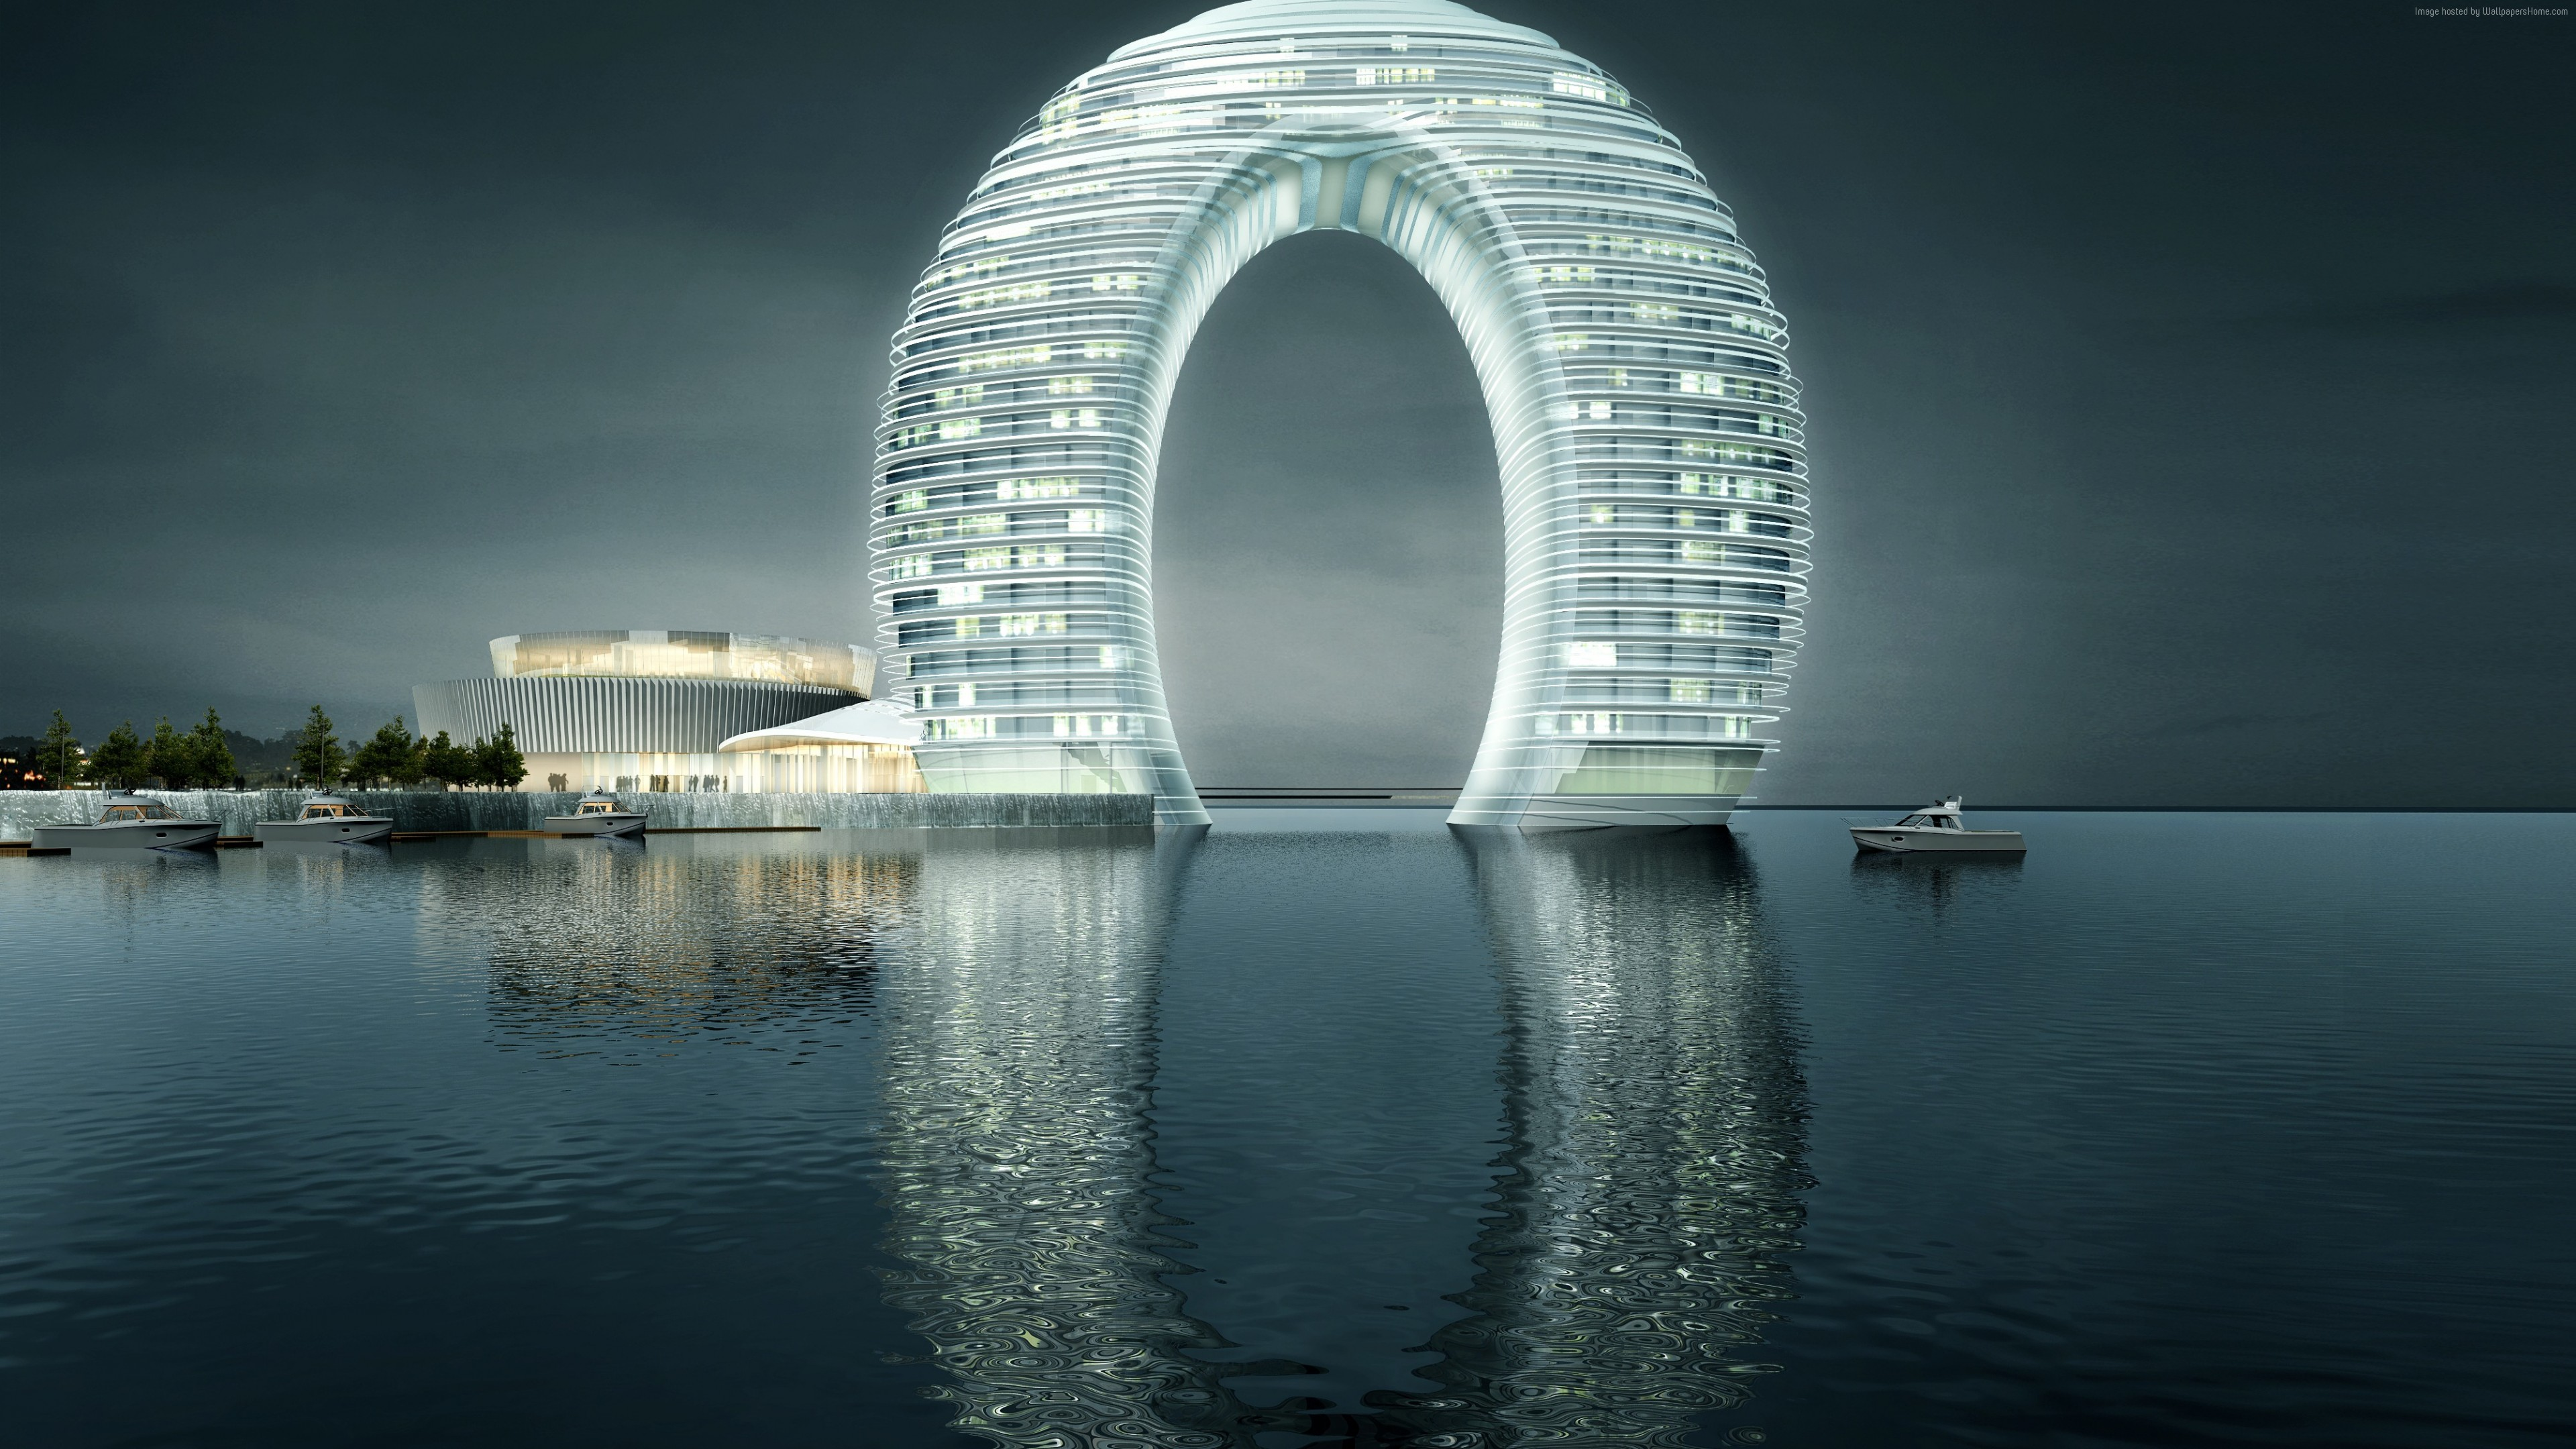 Wallpaper Sheraton Huzhou Hot Spring Resort, China, Best hotels, tourism, travel, resort, booking, vacation, Architecture